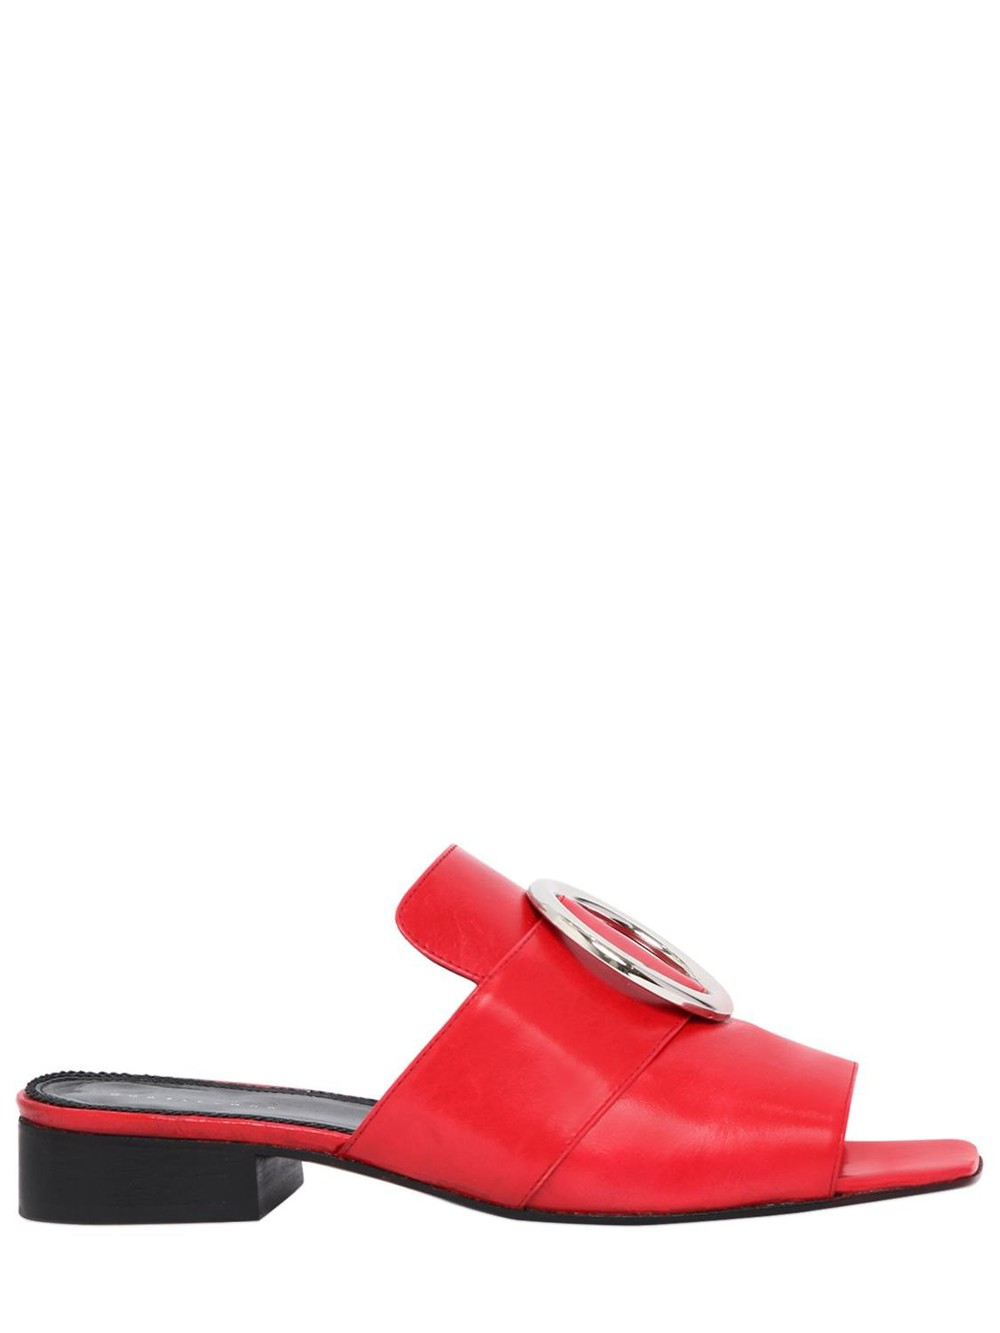 DORATEYMUR 25mm Harput Leather Slide Sandals in red